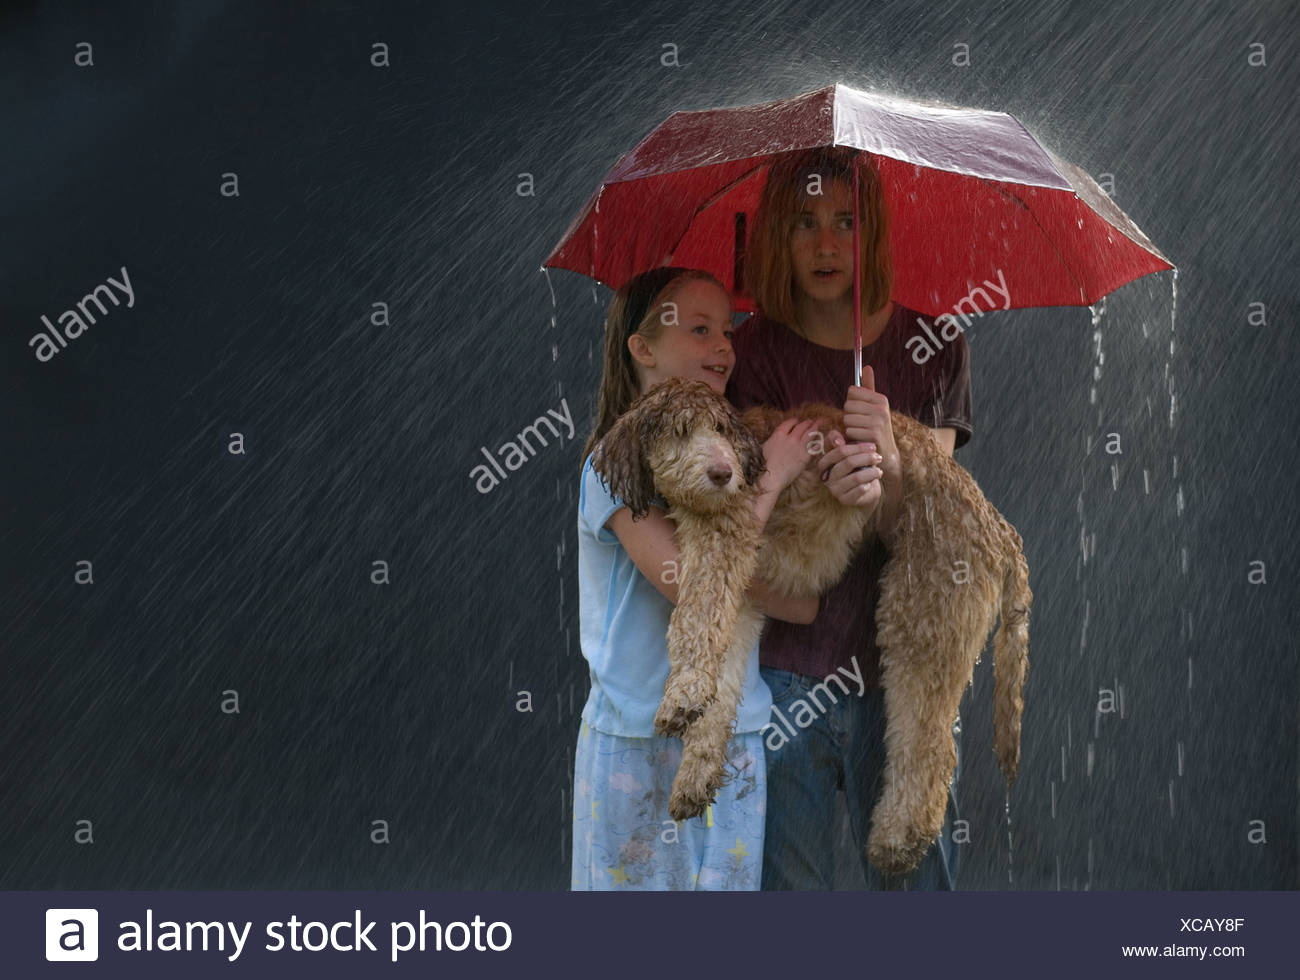 caught in a rain Find caught in the rain stock images in hd and millions of other royalty-free stock photos, illustrations, and vectors in the shutterstock collection thousands of new, high-quality pictures added every day.